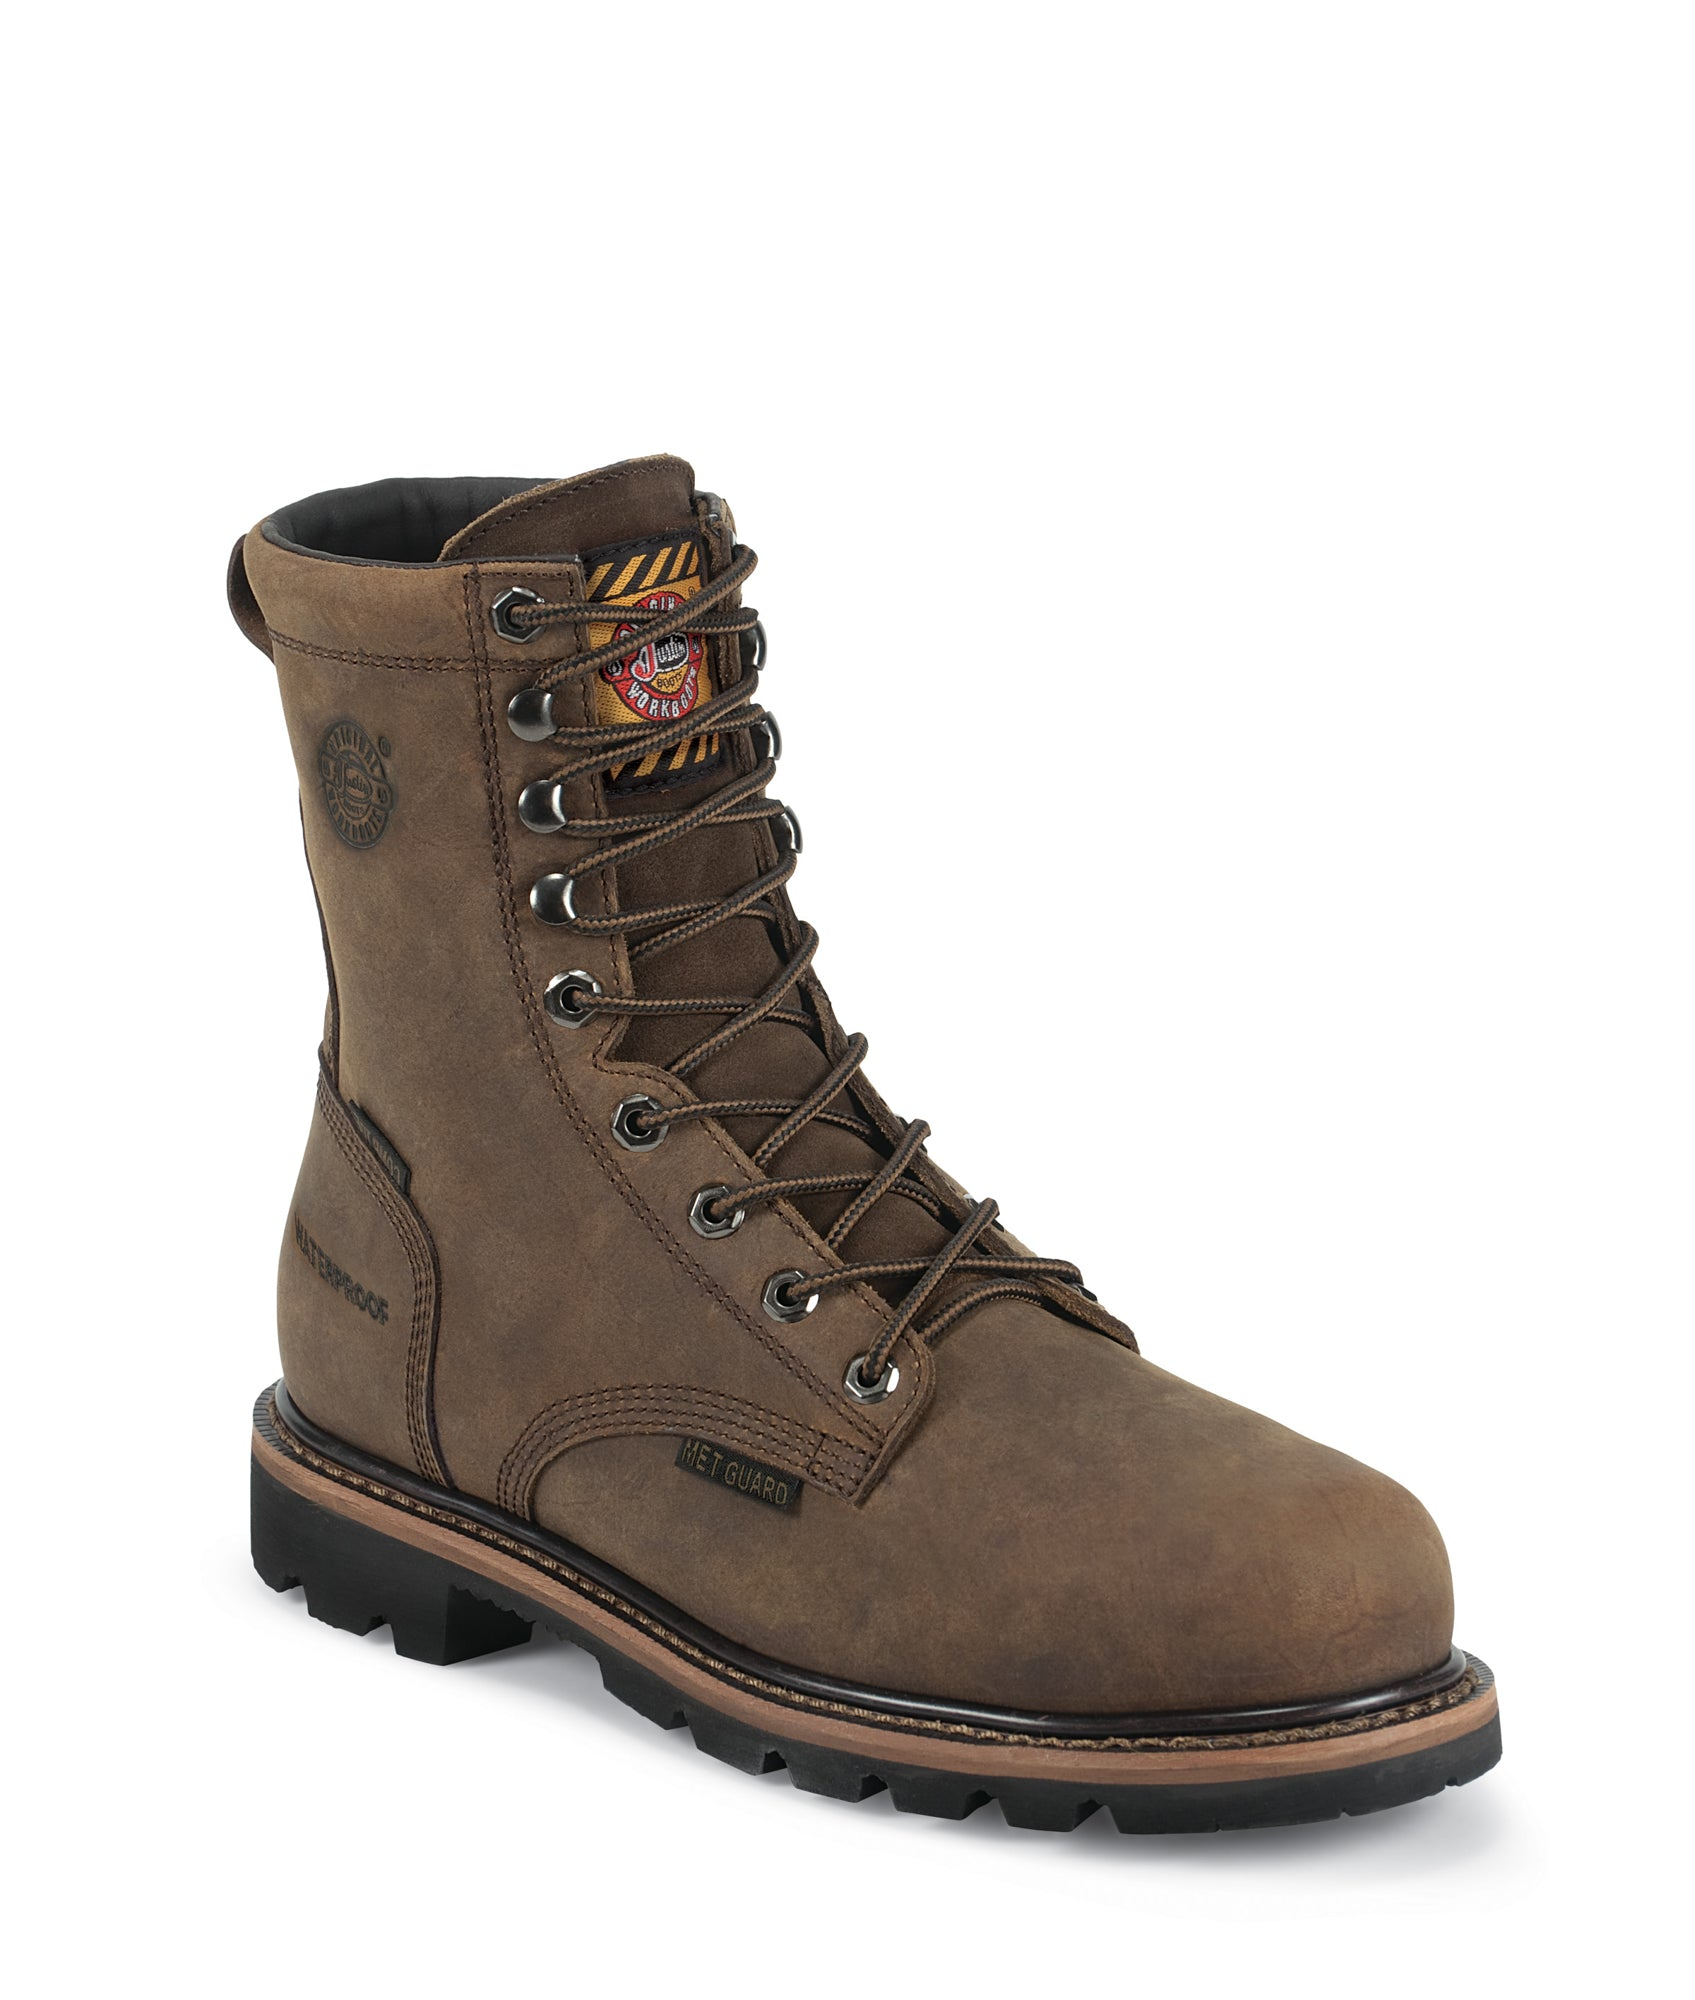 Justin Mens Wyoming Leather Work Boots